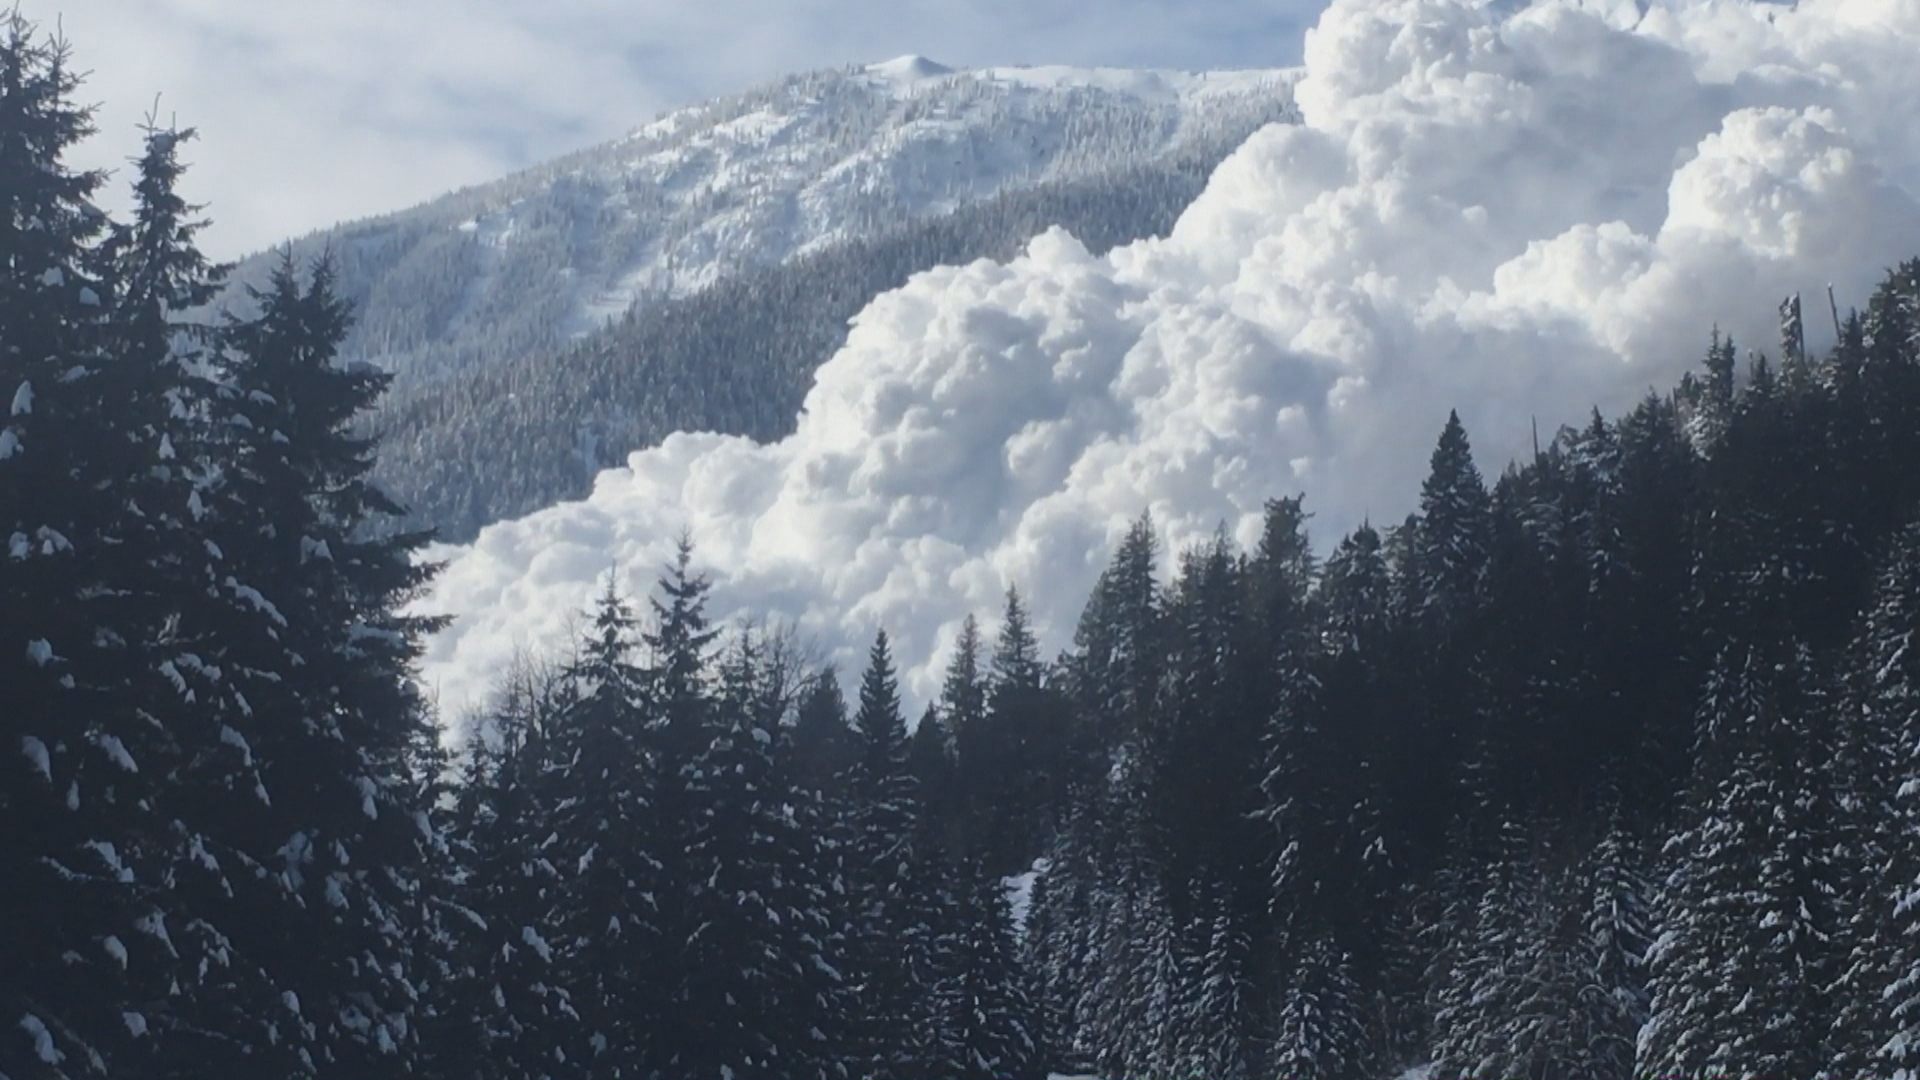 The snow comes roaring down the mountainside after the team triggers an avalanche. (Ministry of Transportation/Video)